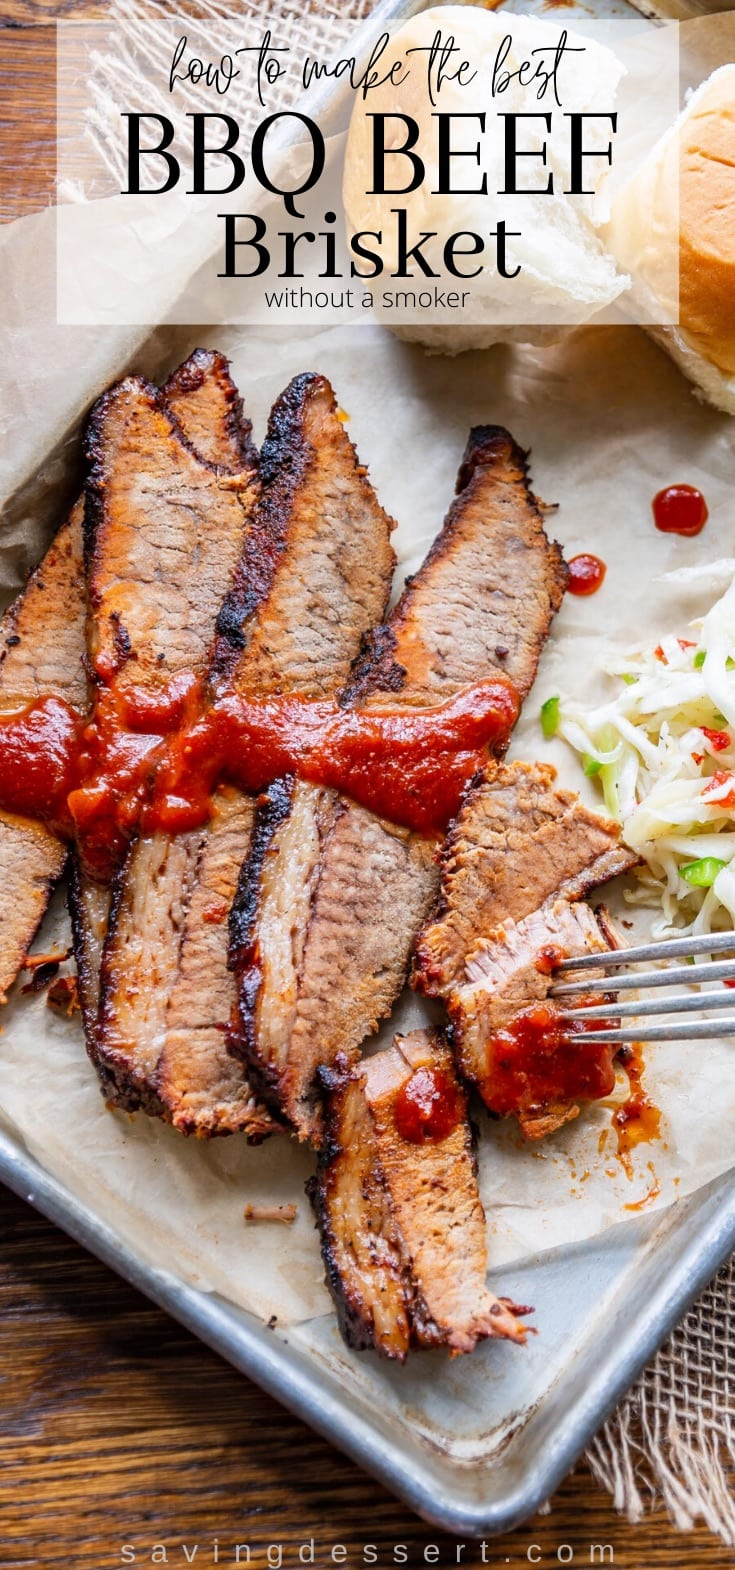 Sliced BBQ Beef brisket on a try served with rolls and cole slaw